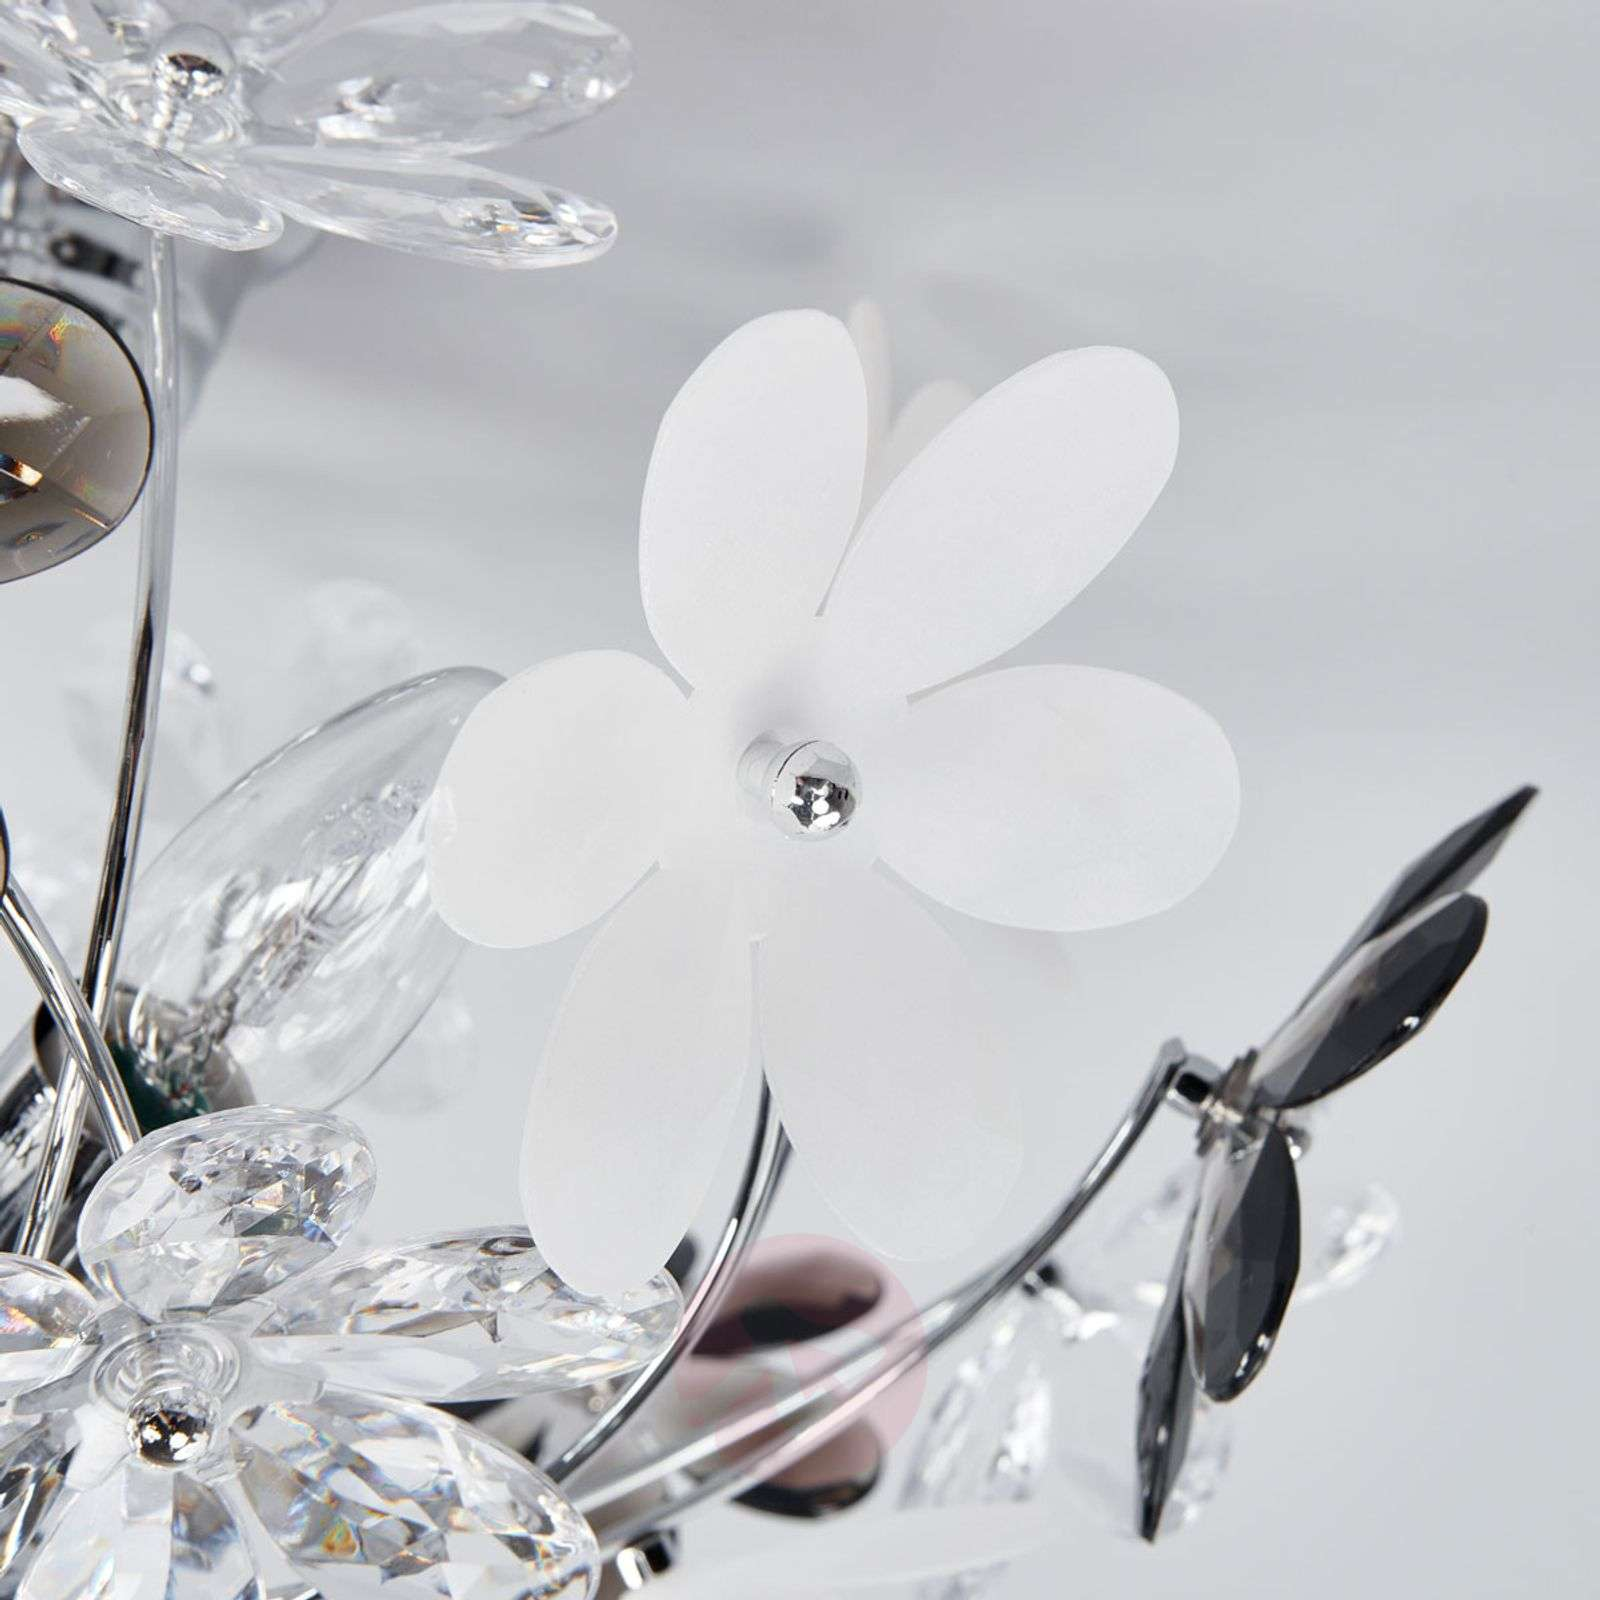 Flower Ceiling Lamp with Transparent Blossoms-4014583-02